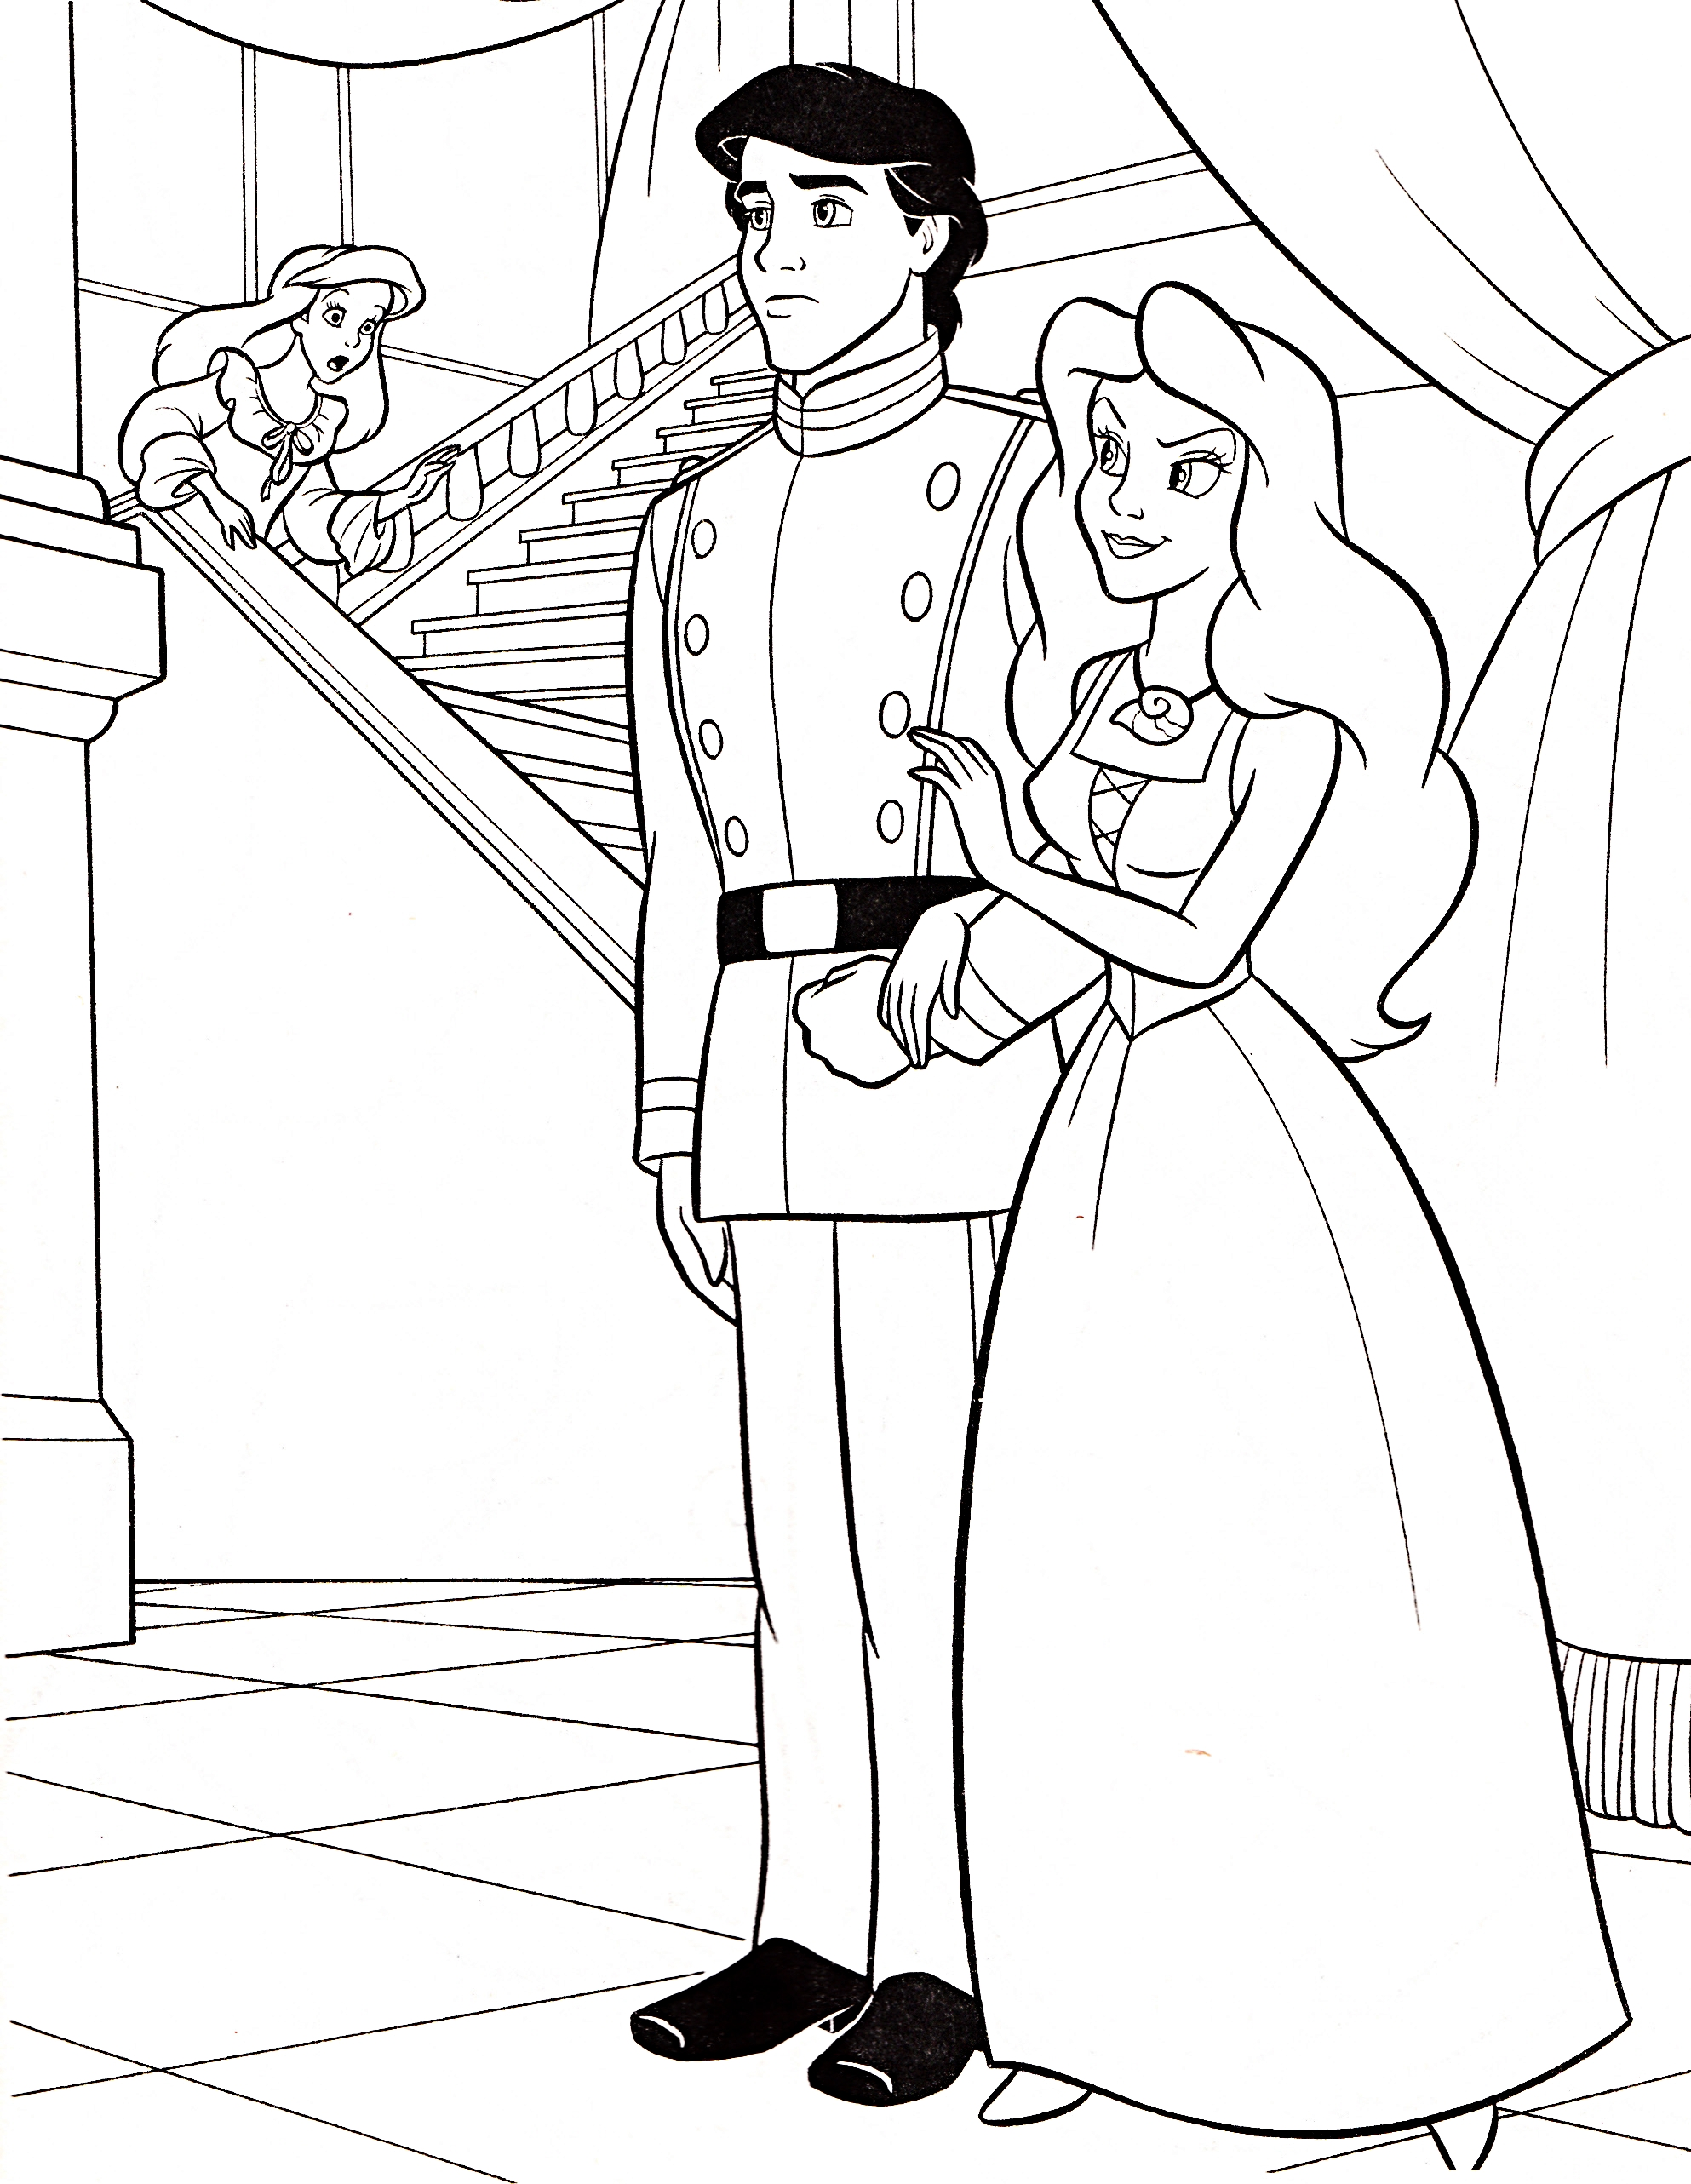 prince and princess coloring pages - photo#19